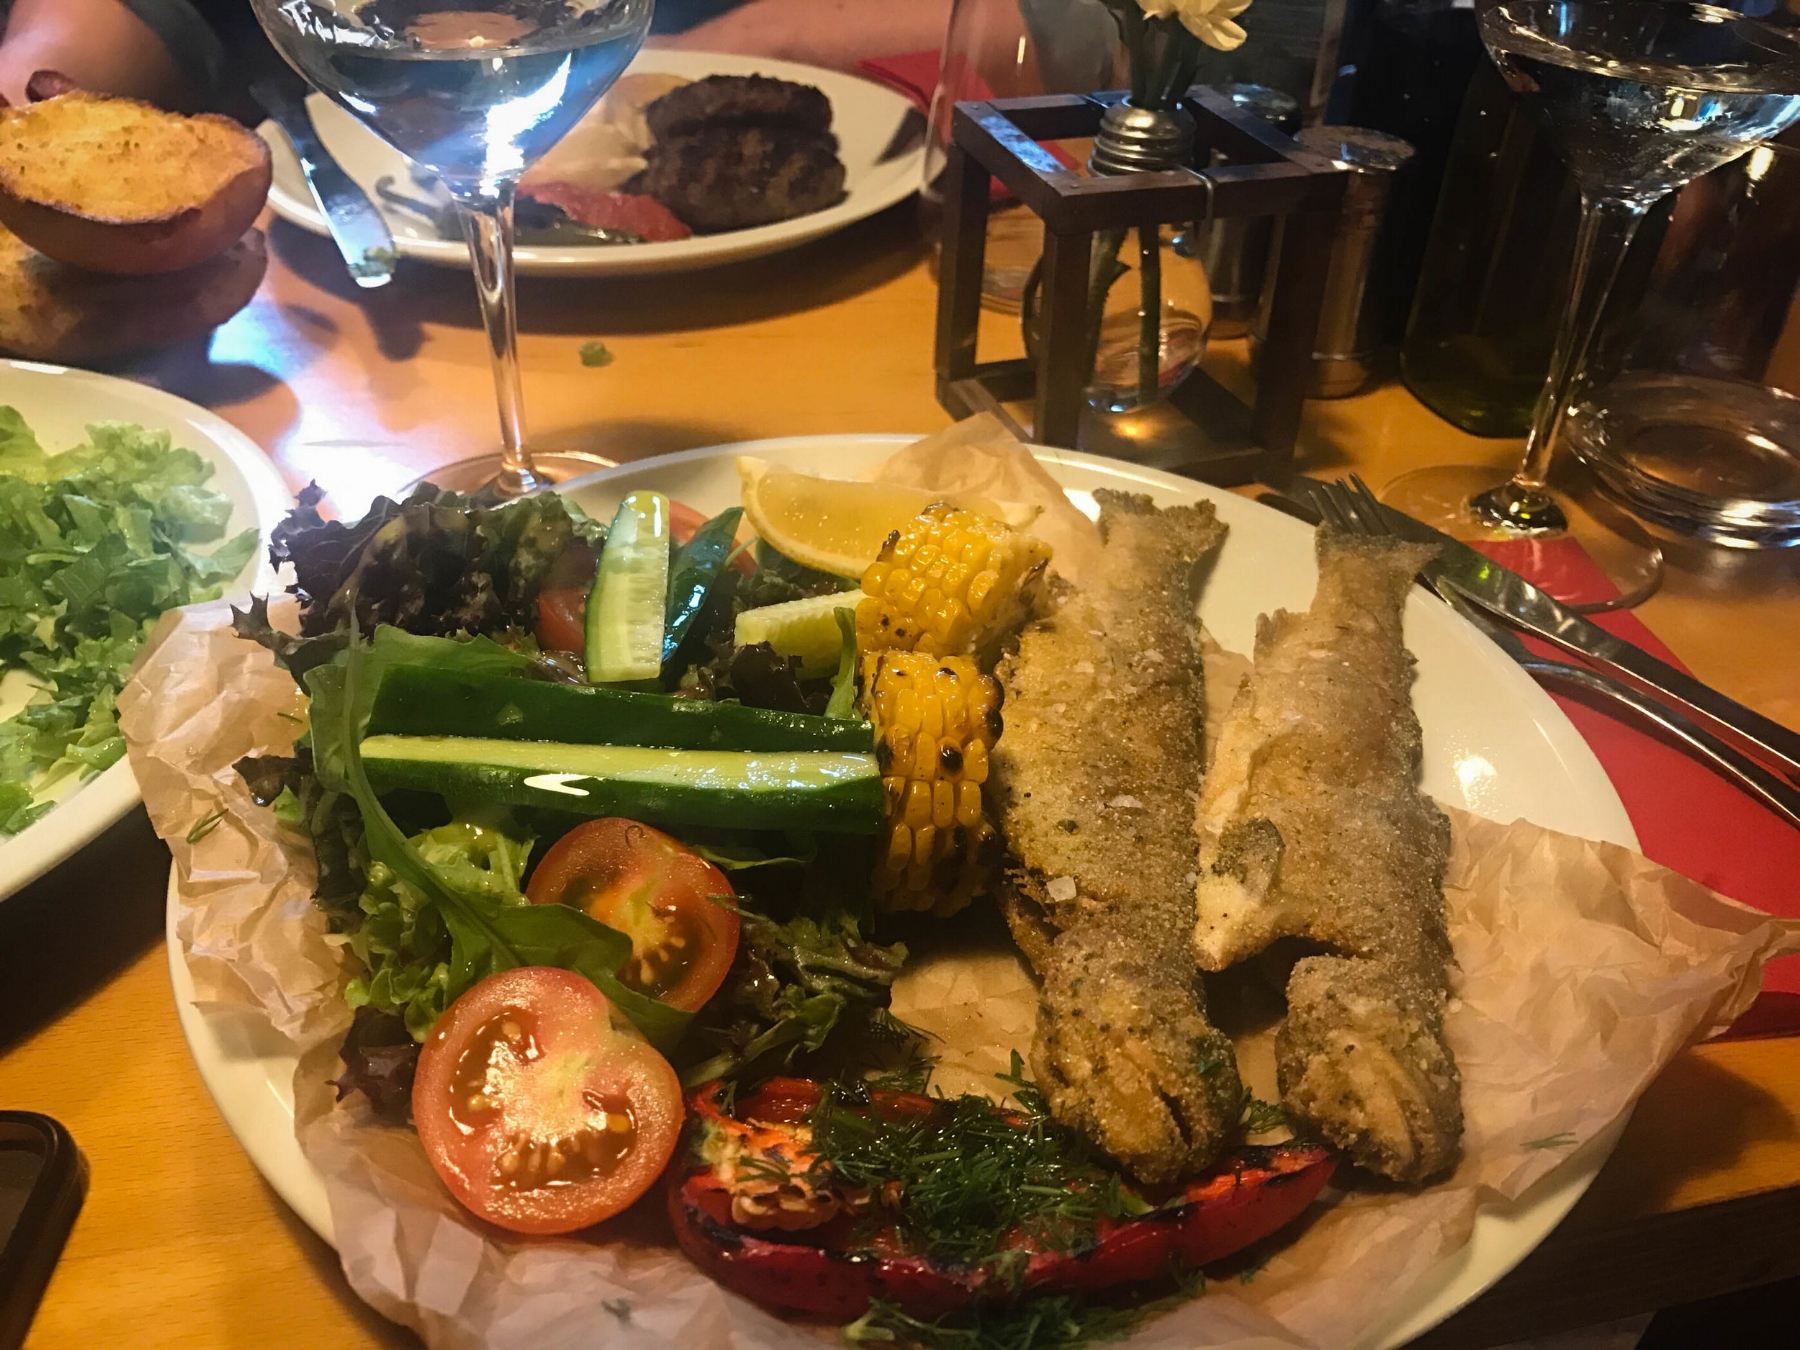 Things to do in Plovfdiv. Bulgarian traditional dish in the Pavaj restaurant located in iKapana, Ploviv (Bulgaria). The dish has veggies and fried fish